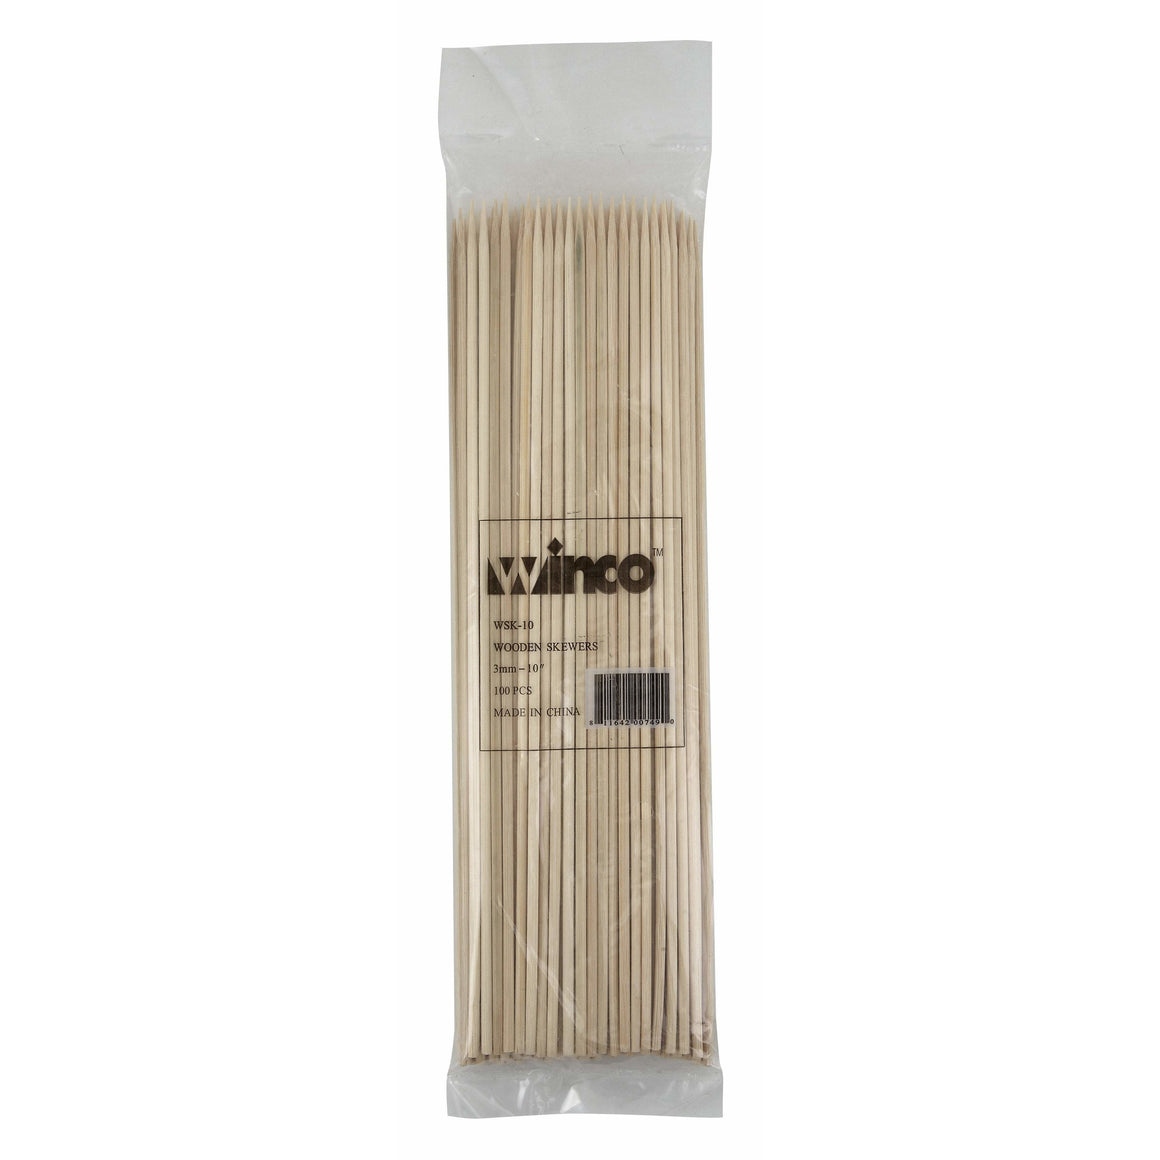 "Winco - WSK-10 - 10"" Bamboo Skewers, 100/bag - Kitchen Utensils"